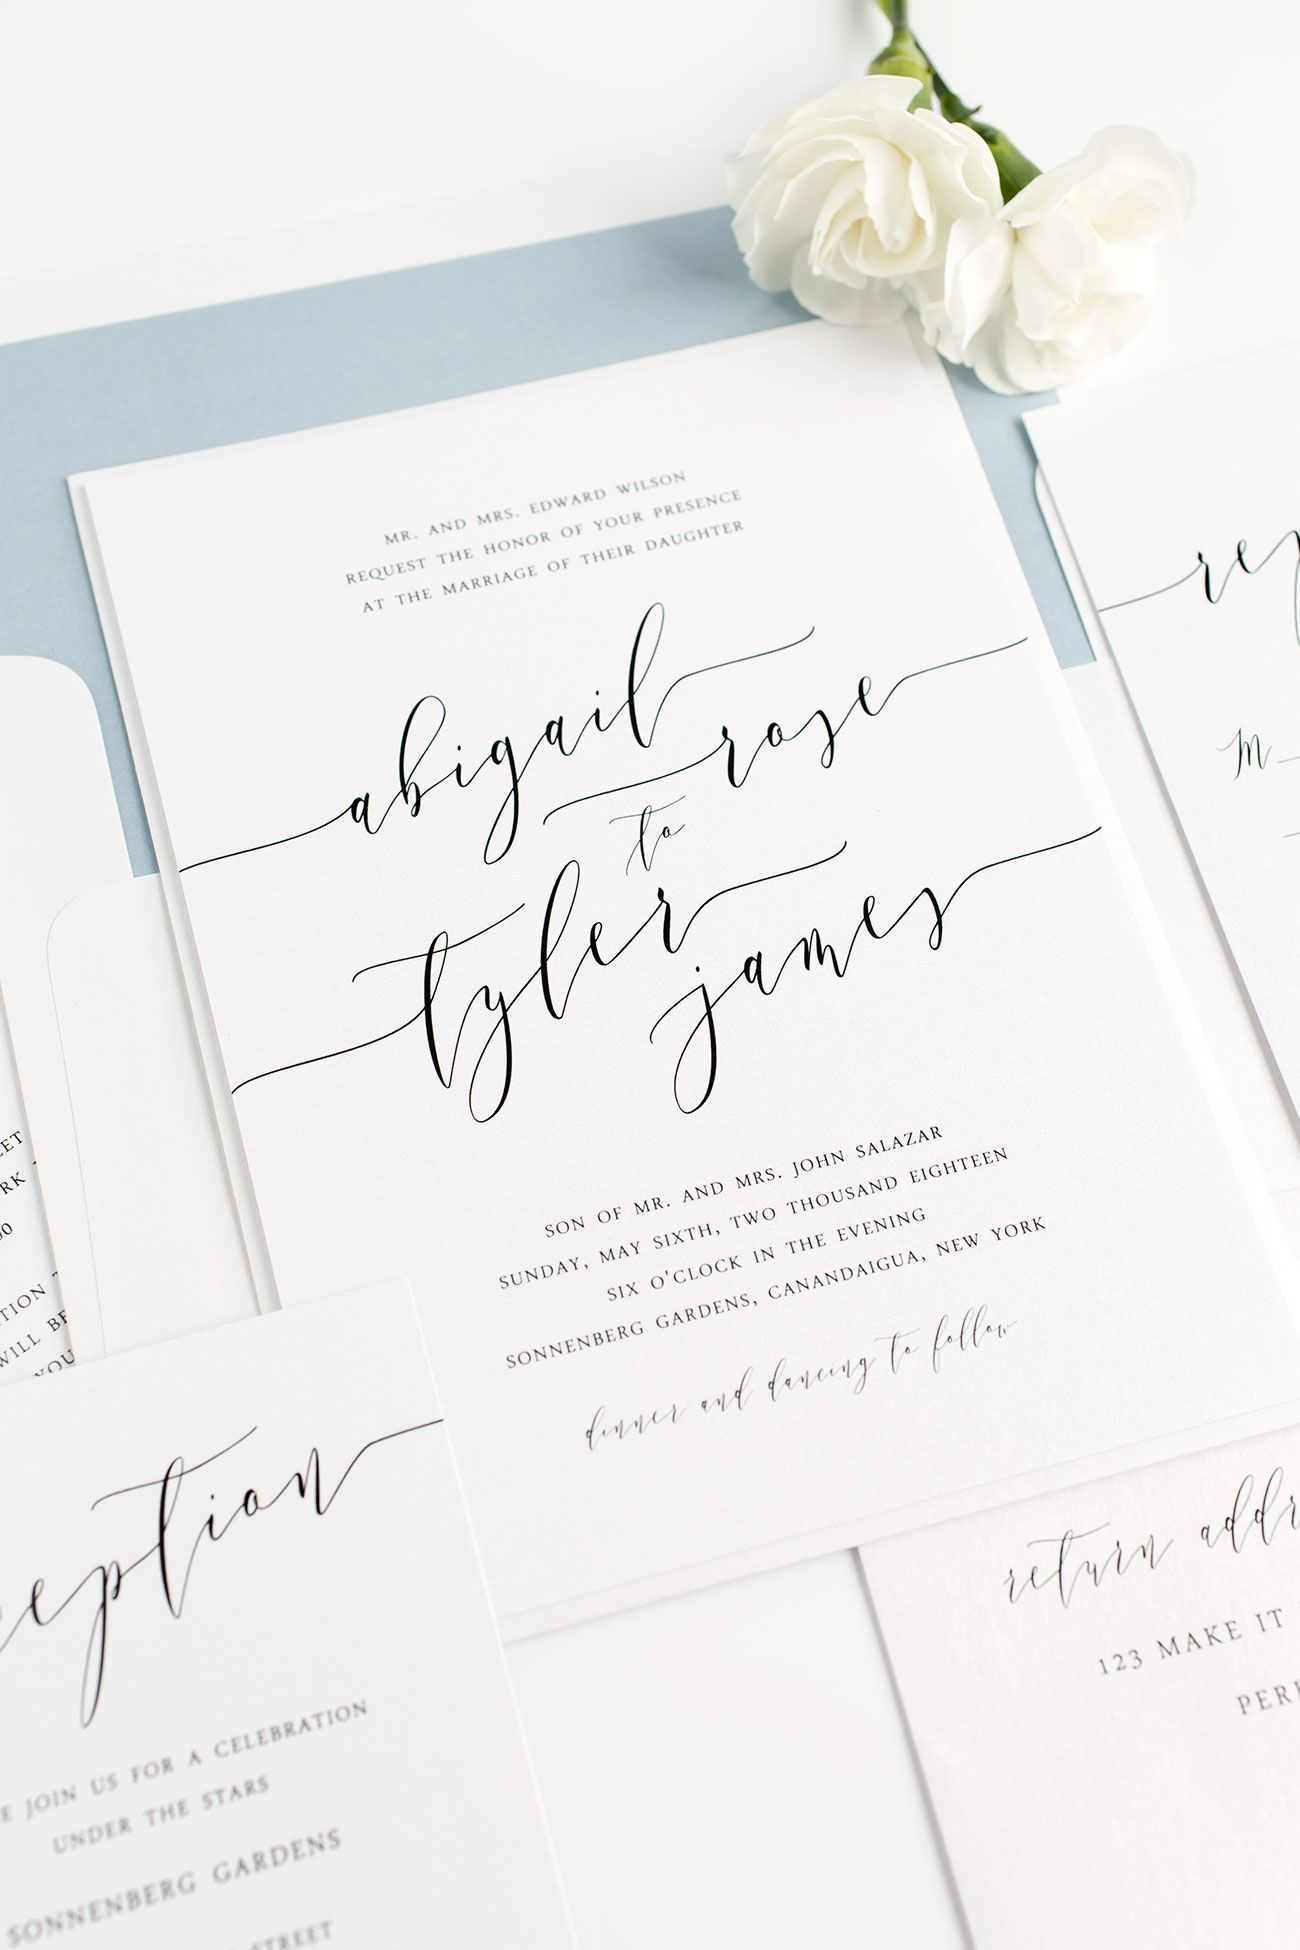 Elegante Bluse Hochzeit Dusty Blue Wedding Invitations With Modern Calligraphy